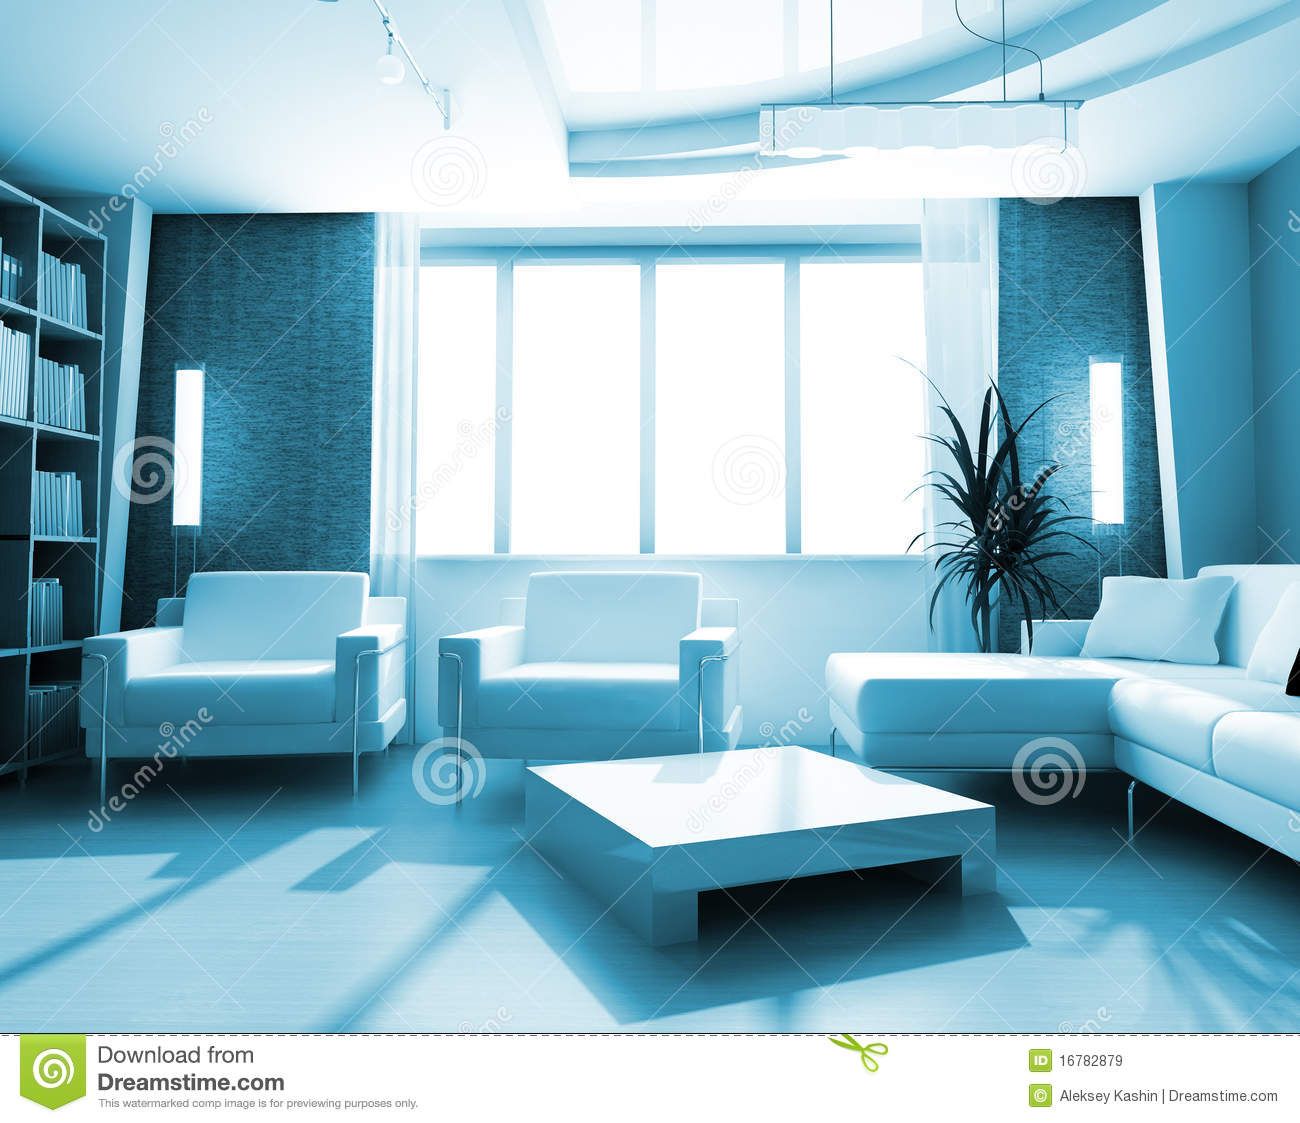 Drawing room 3d royalty free stock images image 16782879 for 3d bedroom drawing